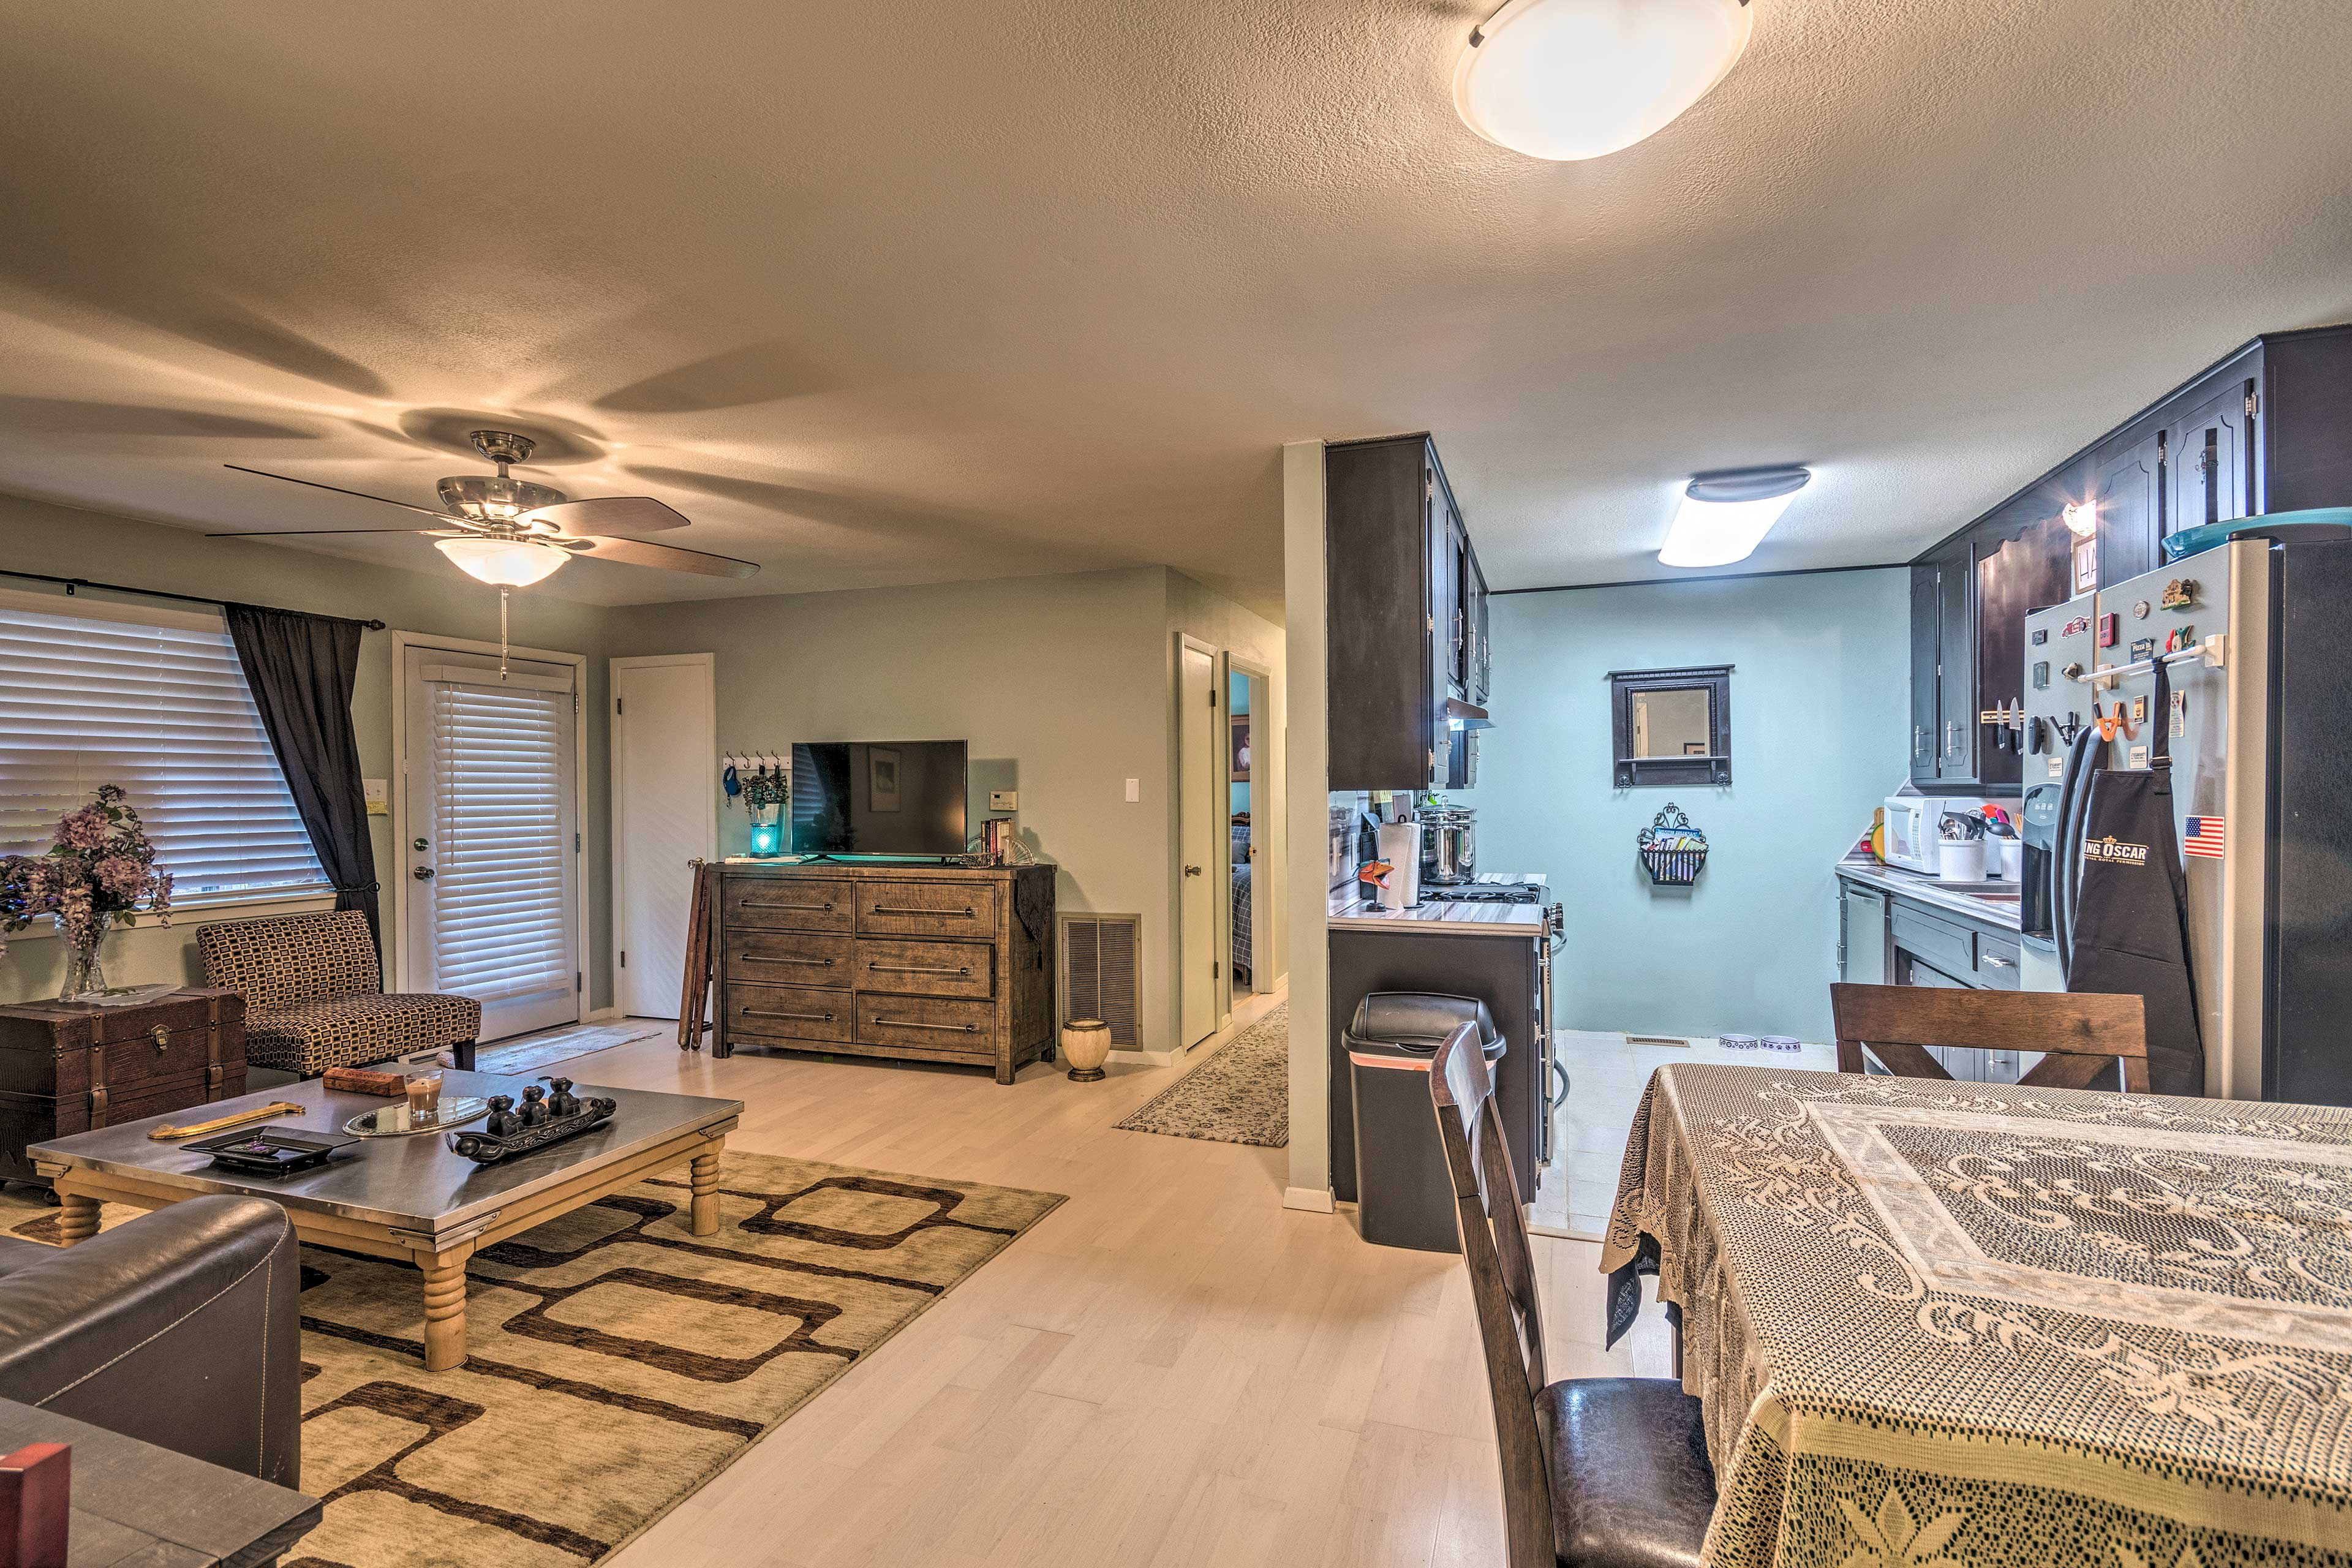 The open floor plan gives the home an inviting feel.